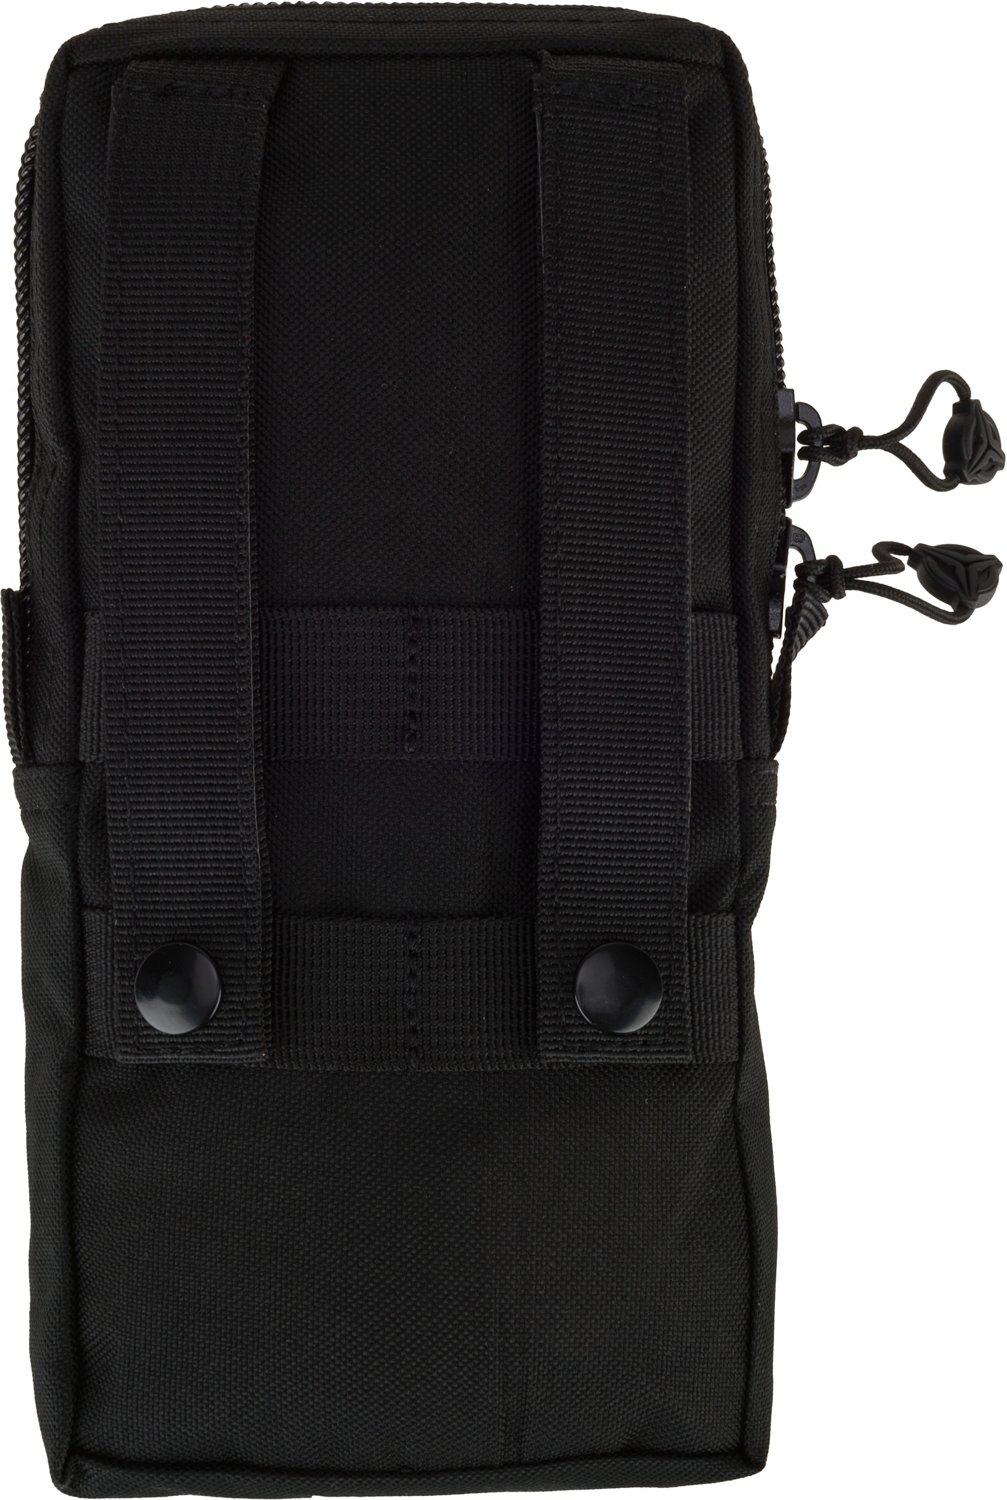 Tactical Performance™ MOLLE Utility Pouch - view number 1